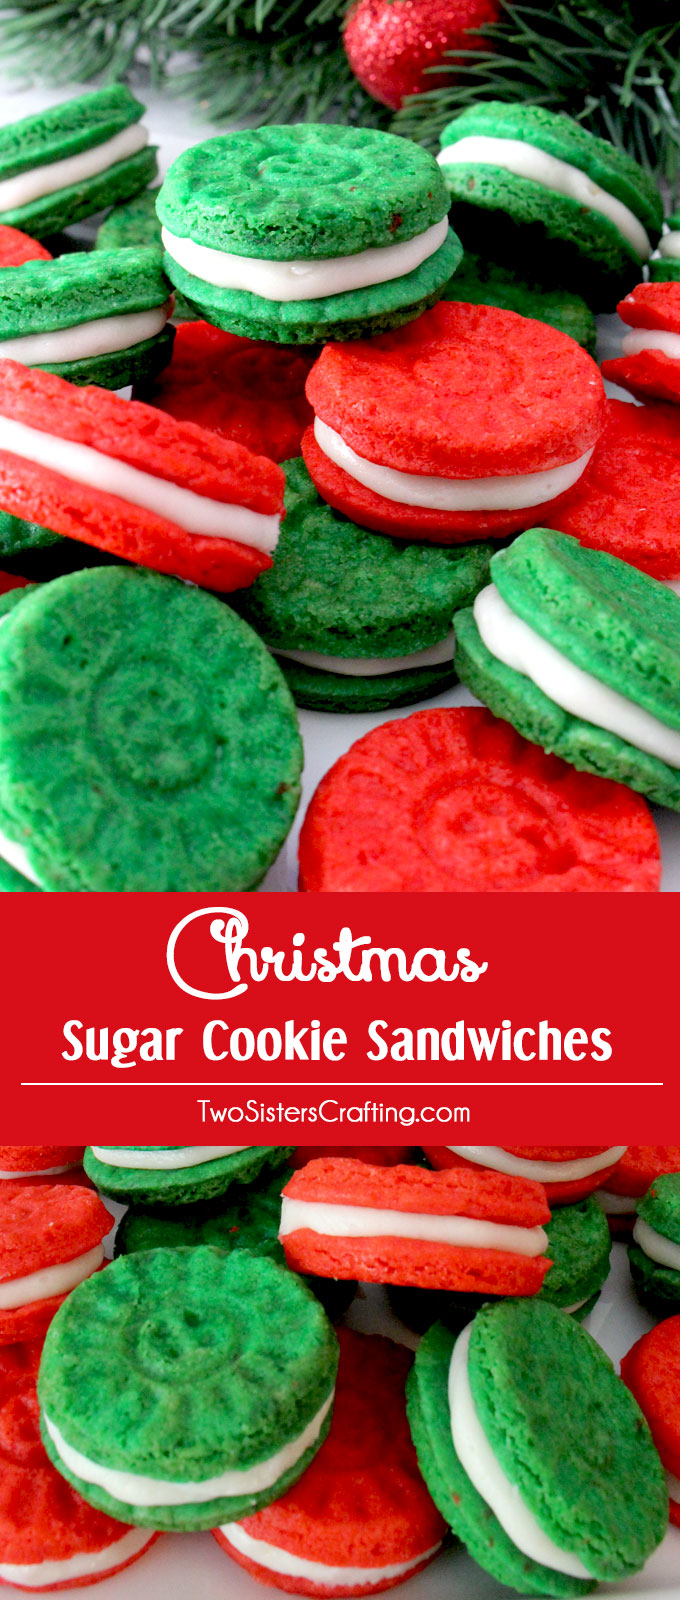 Sugar Cookie Sandwiches with Buttercream Frosting are a fun Holiday take on a Frosted Sugar Cookie. Festive, colorful, easy to make and so very yummy - they will be instant family favorite Christmas Cookie. Make your family a Christmas Treat that they are sure to love! (They'd be a great for a Cookie Exchange too!) Follow us for more more great Christmas Dessert ideas.